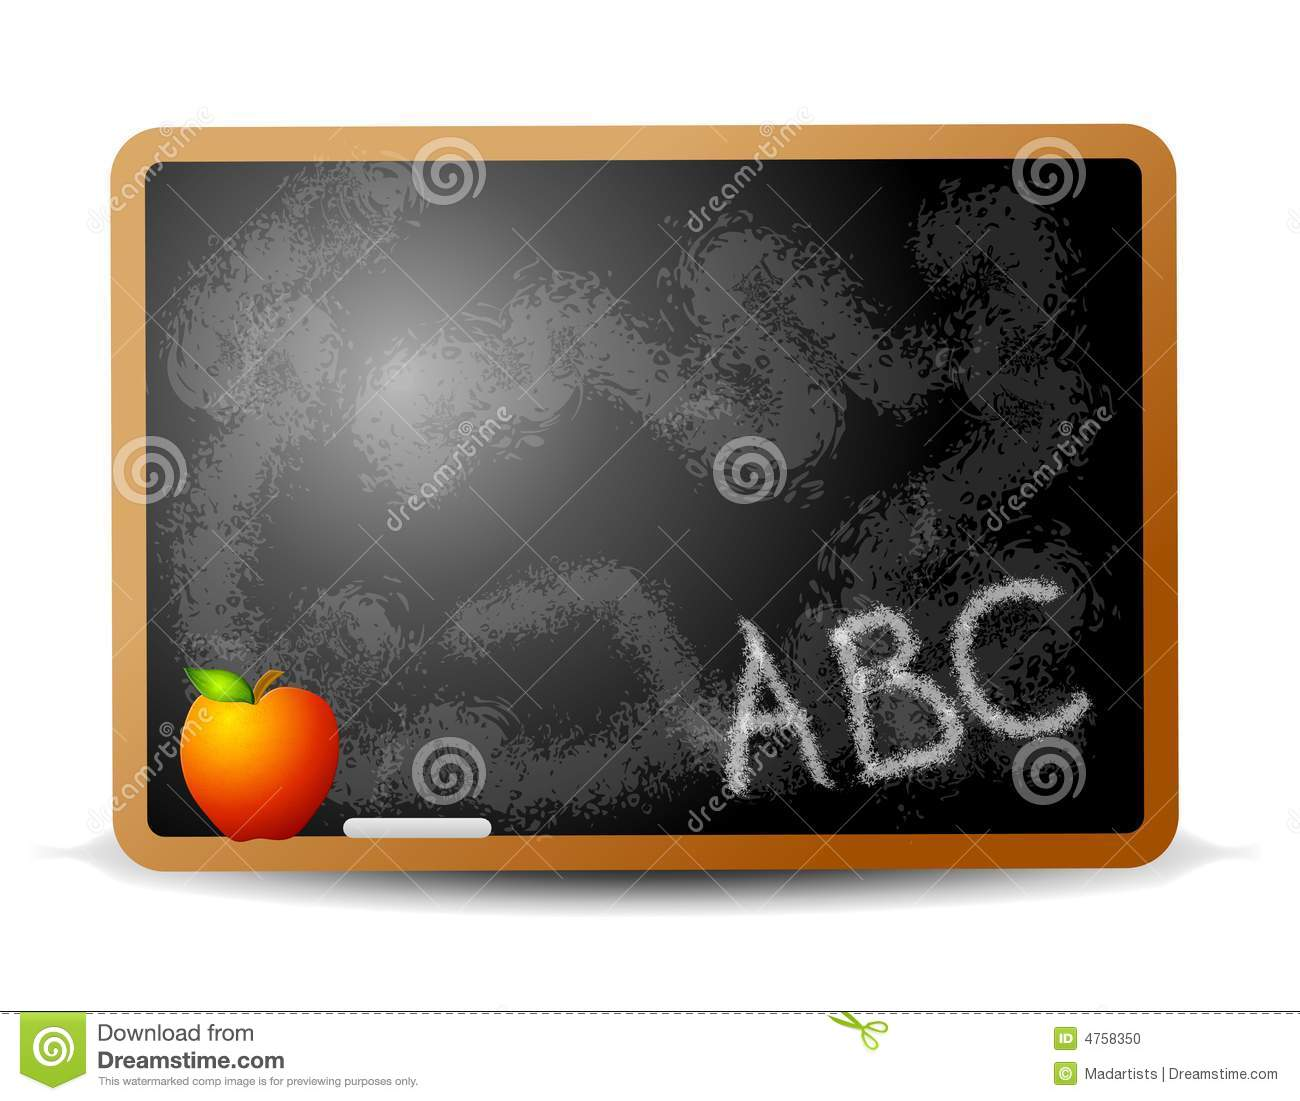 ABC Writing On Chalkboard Stock Photo - Image: 4758350 jpg free download